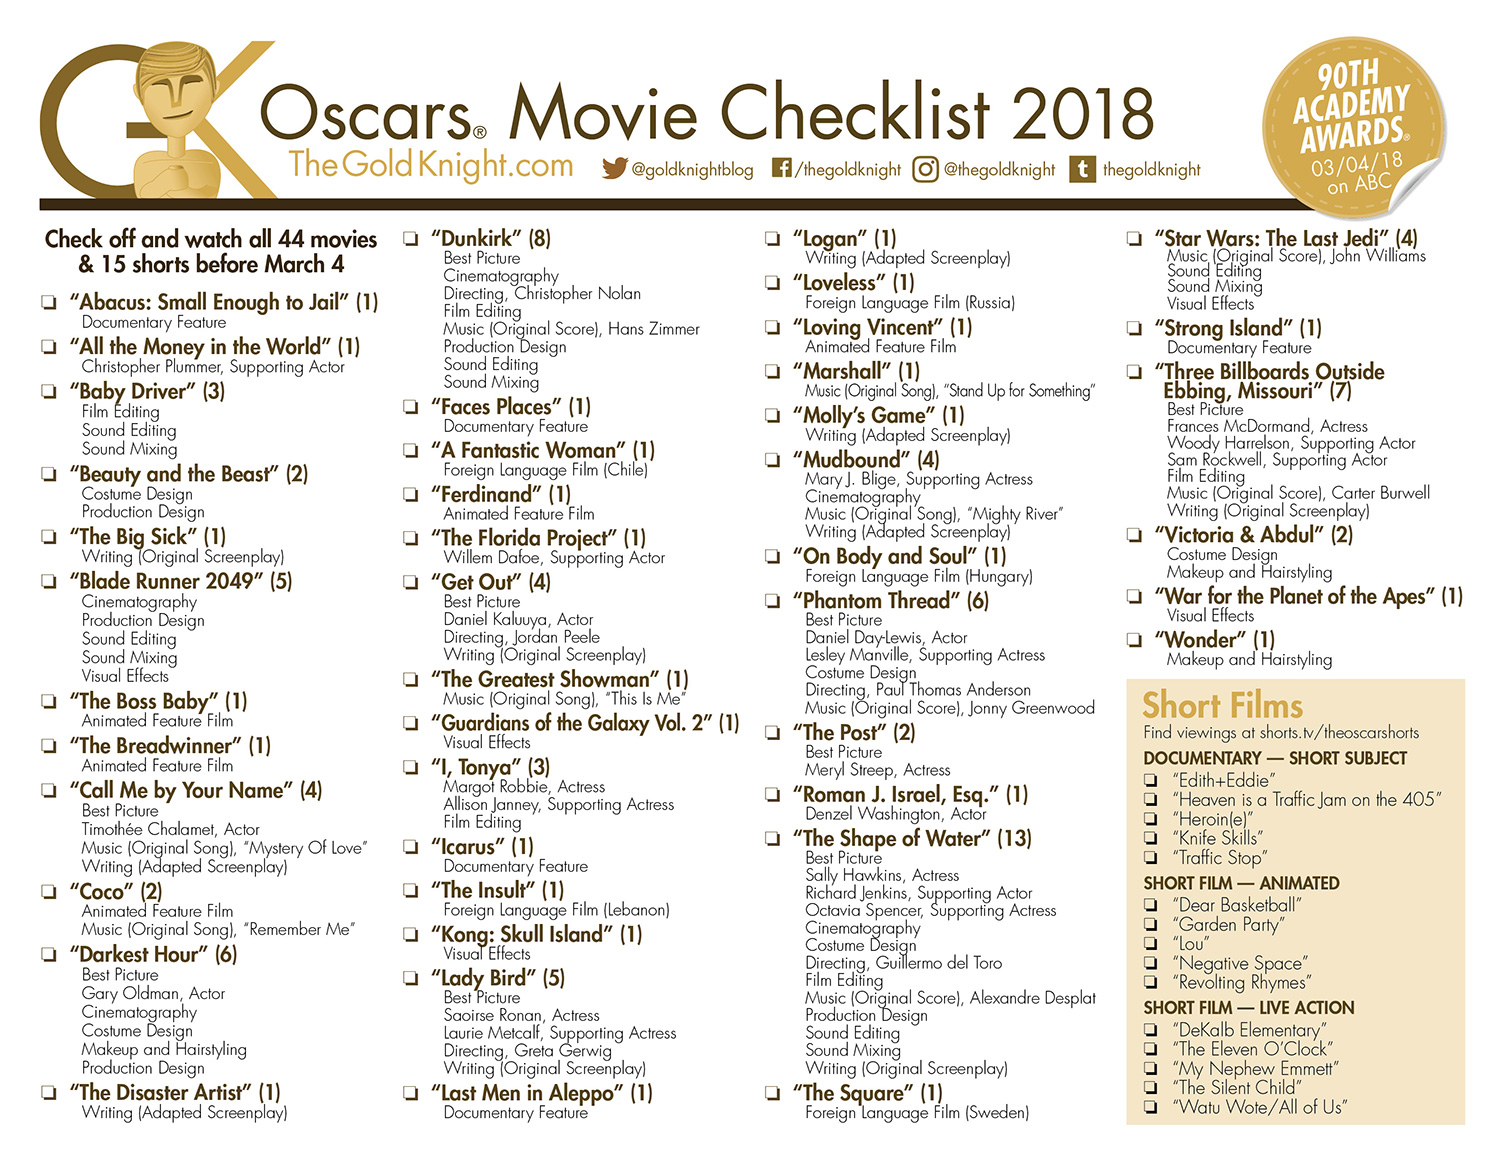 Oscars 2018 Download Our Printable Movie Checklist